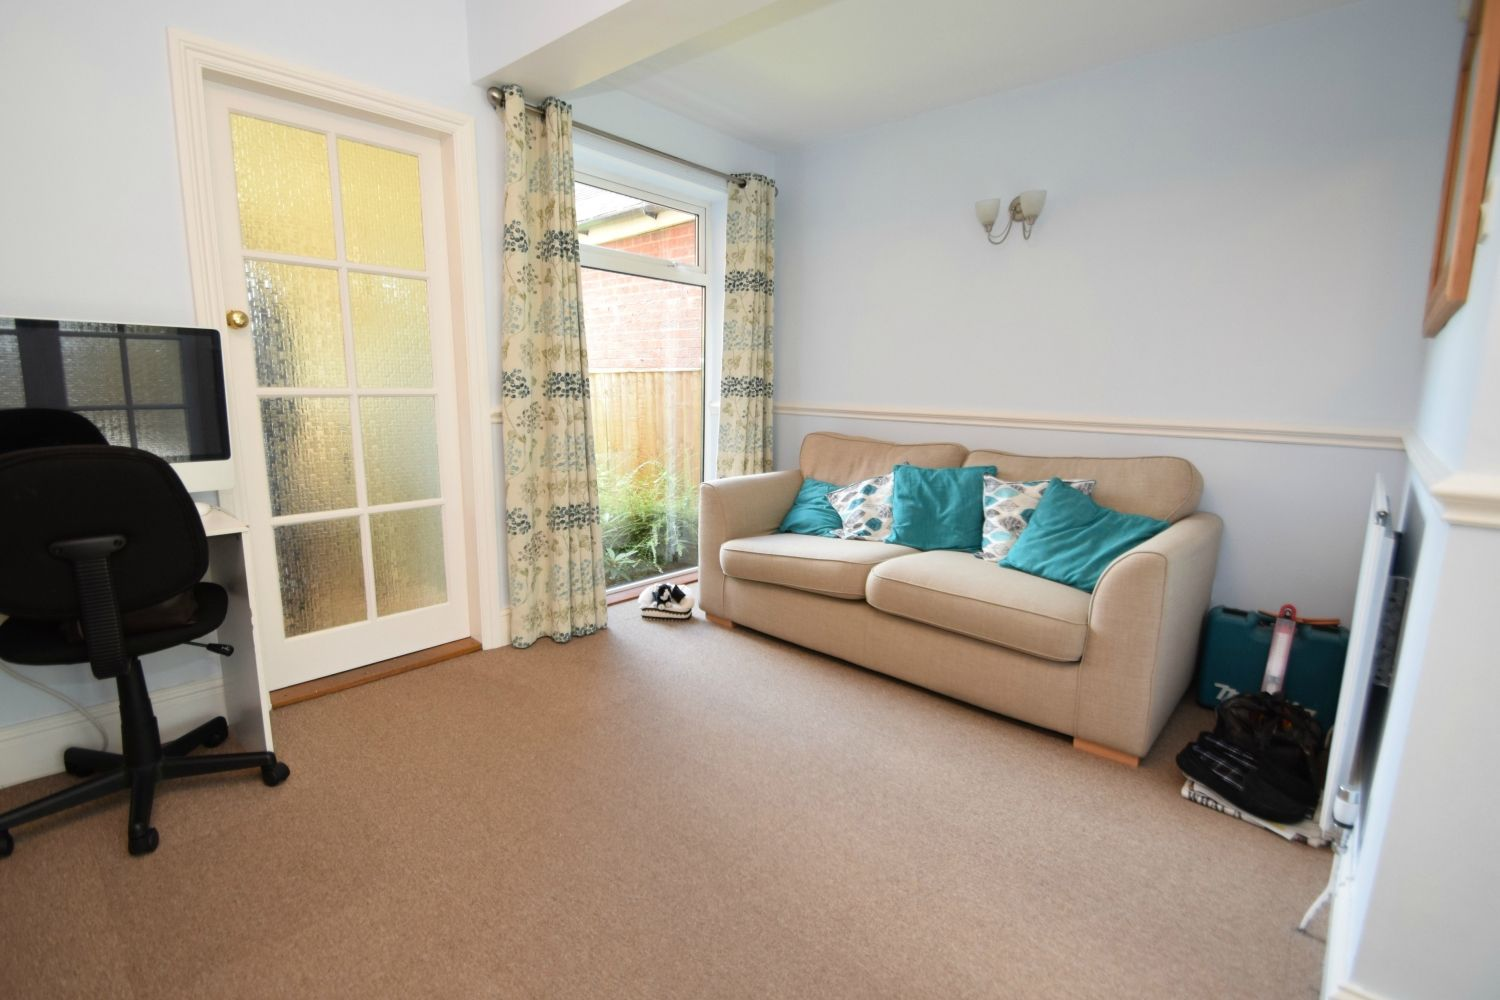 3 bed detached for sale in Reservoir Road, Cofton Hackett  - Property Image 6